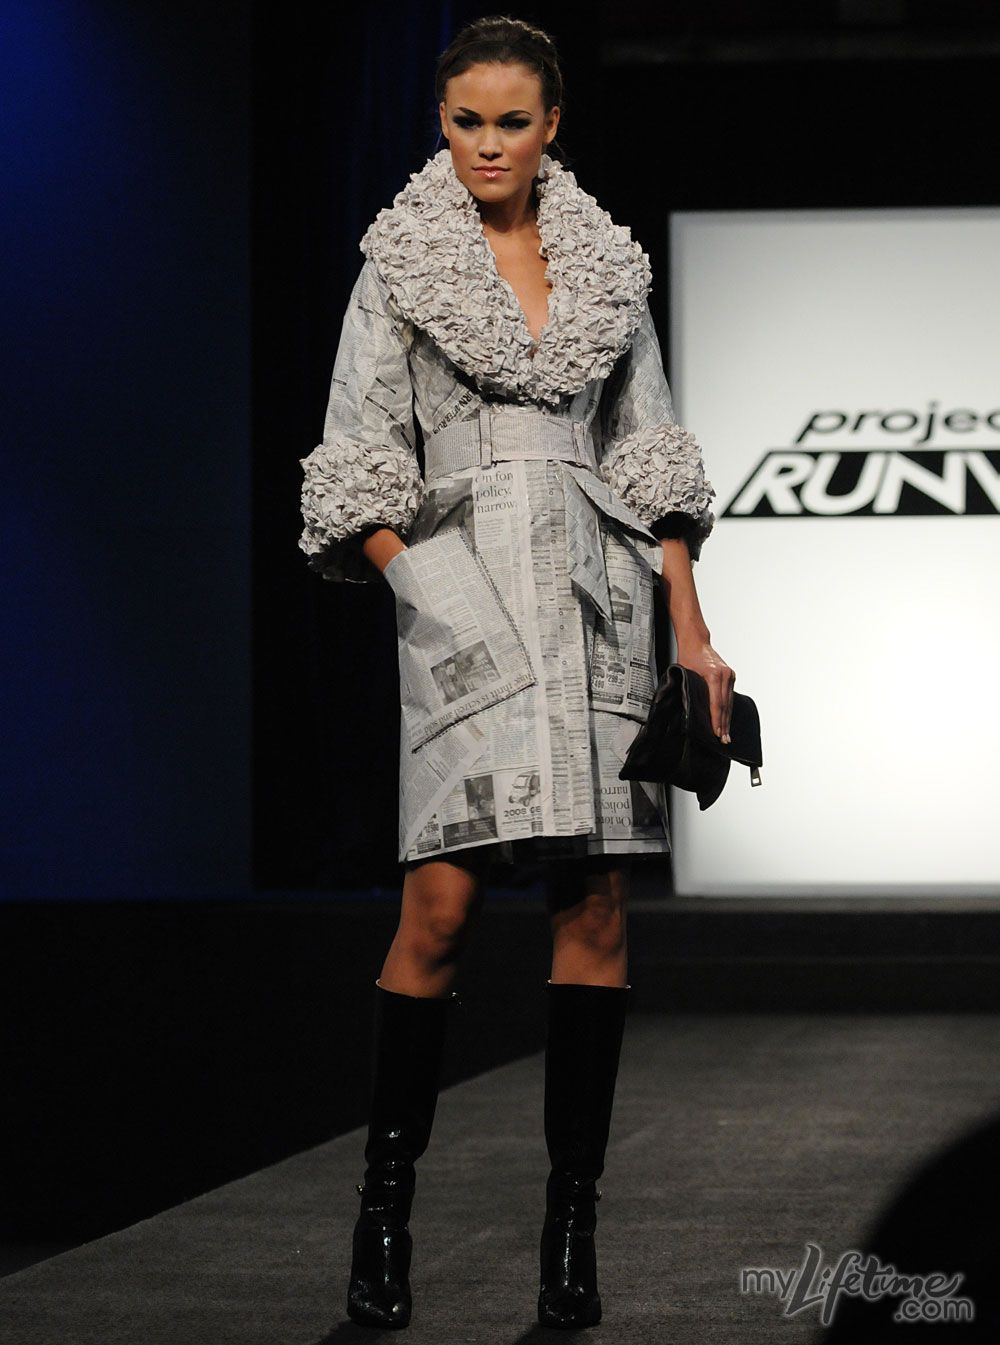 Image result for project runway newspaper dress